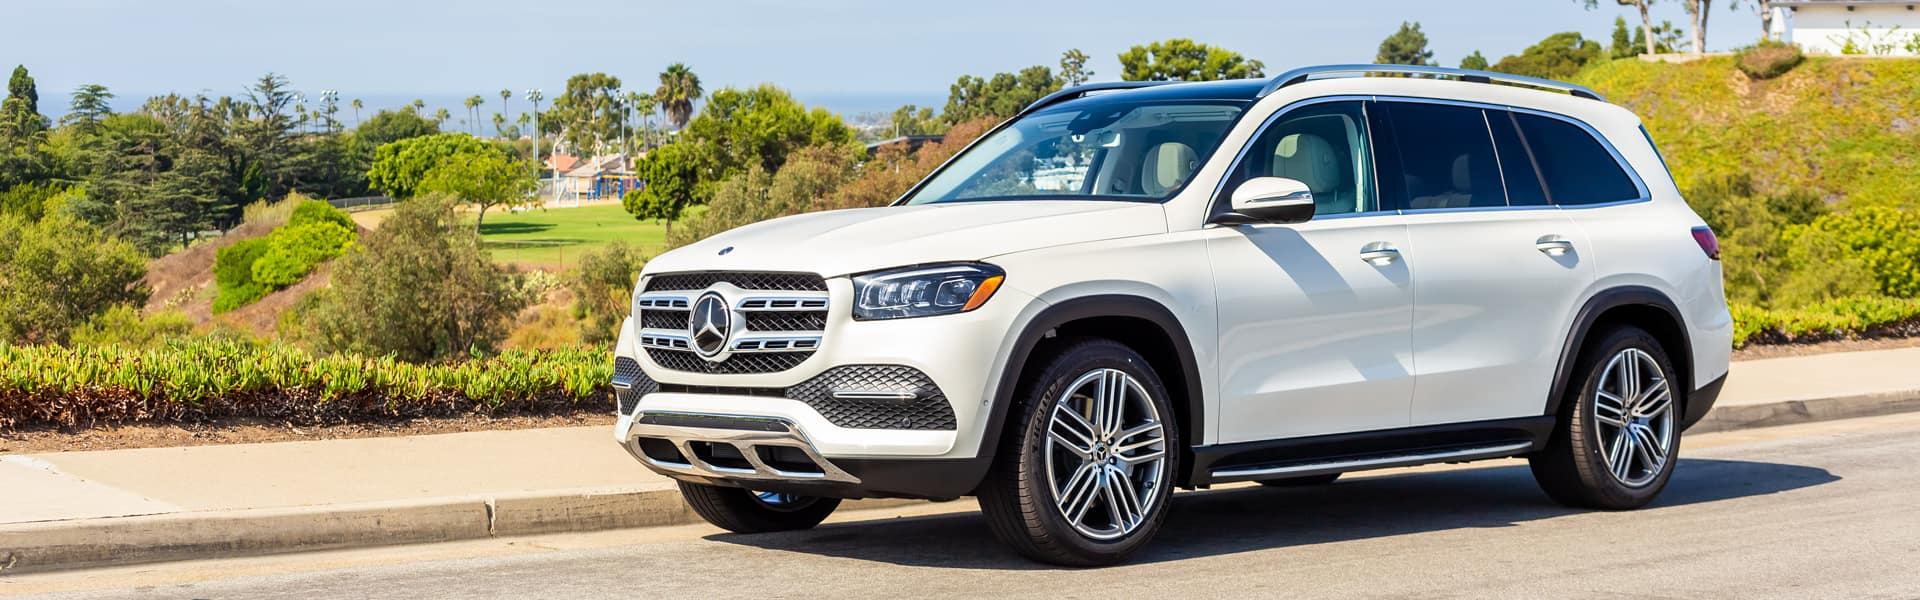 2020 Mercedes-Benz GLS Performance